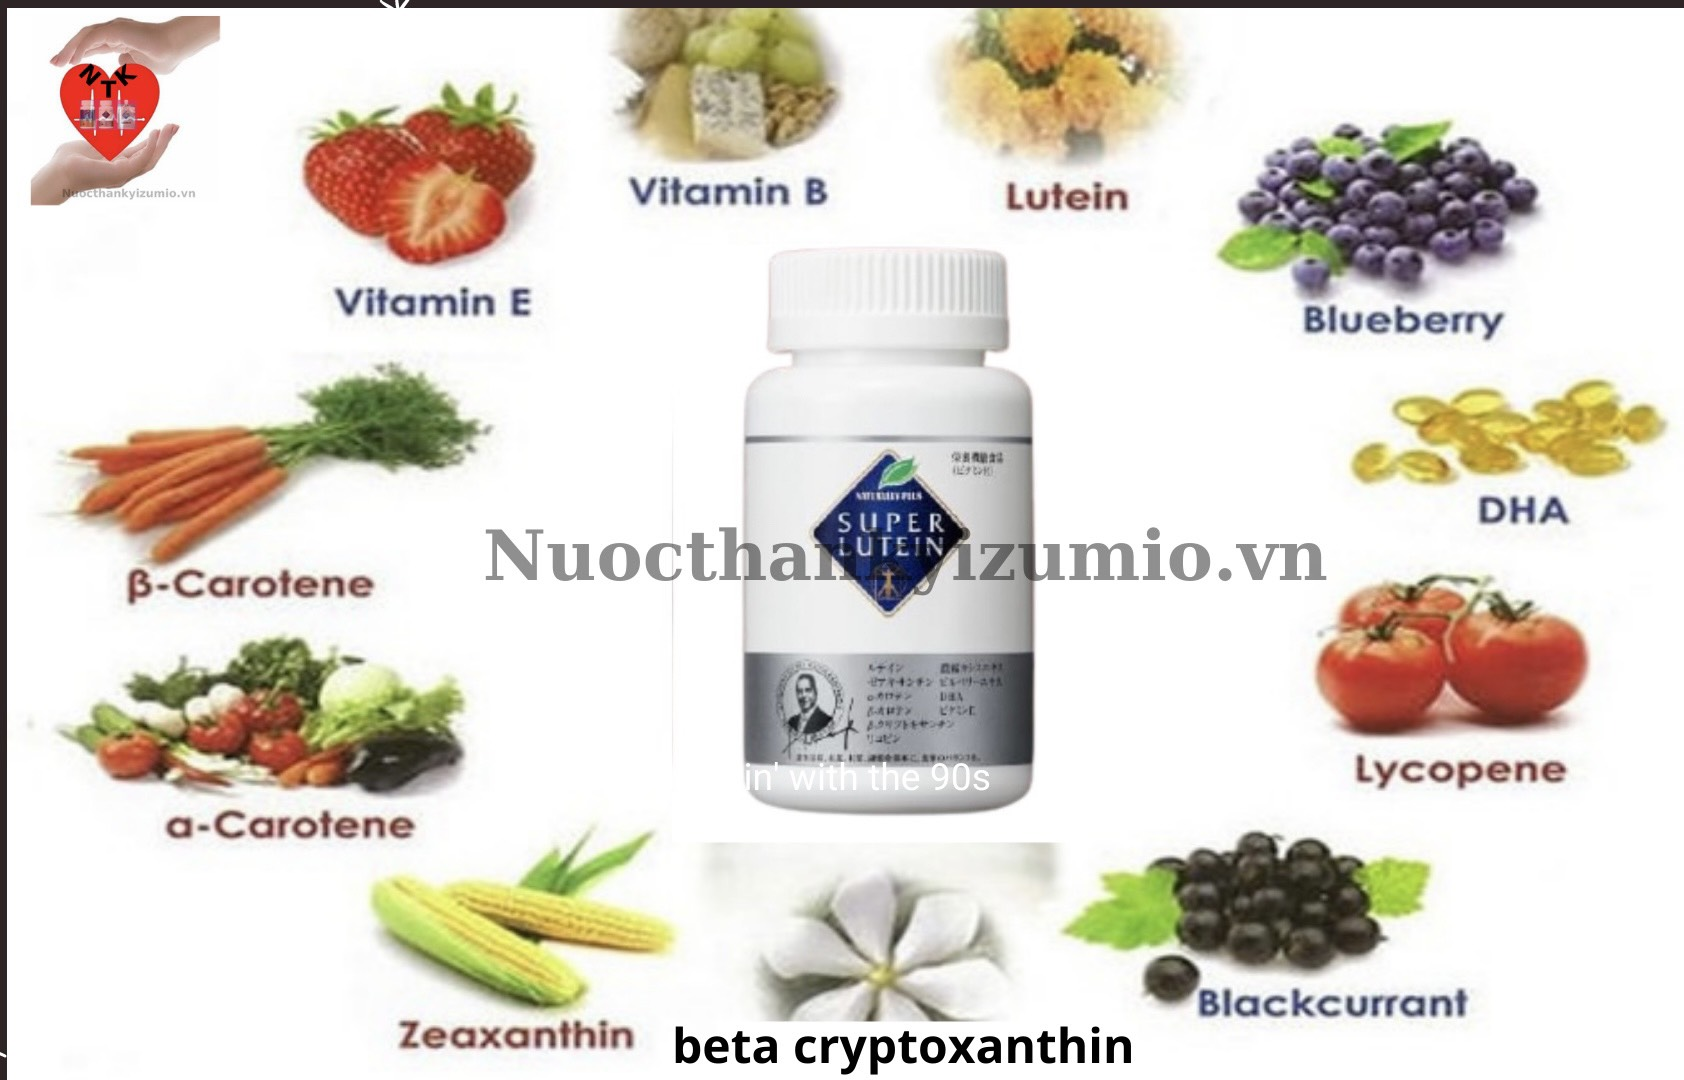 phytochemicals-hoa-hoc-thuc-vat-hay-hoa-chat-thuc-vat-trong-super-lutein-va-supe